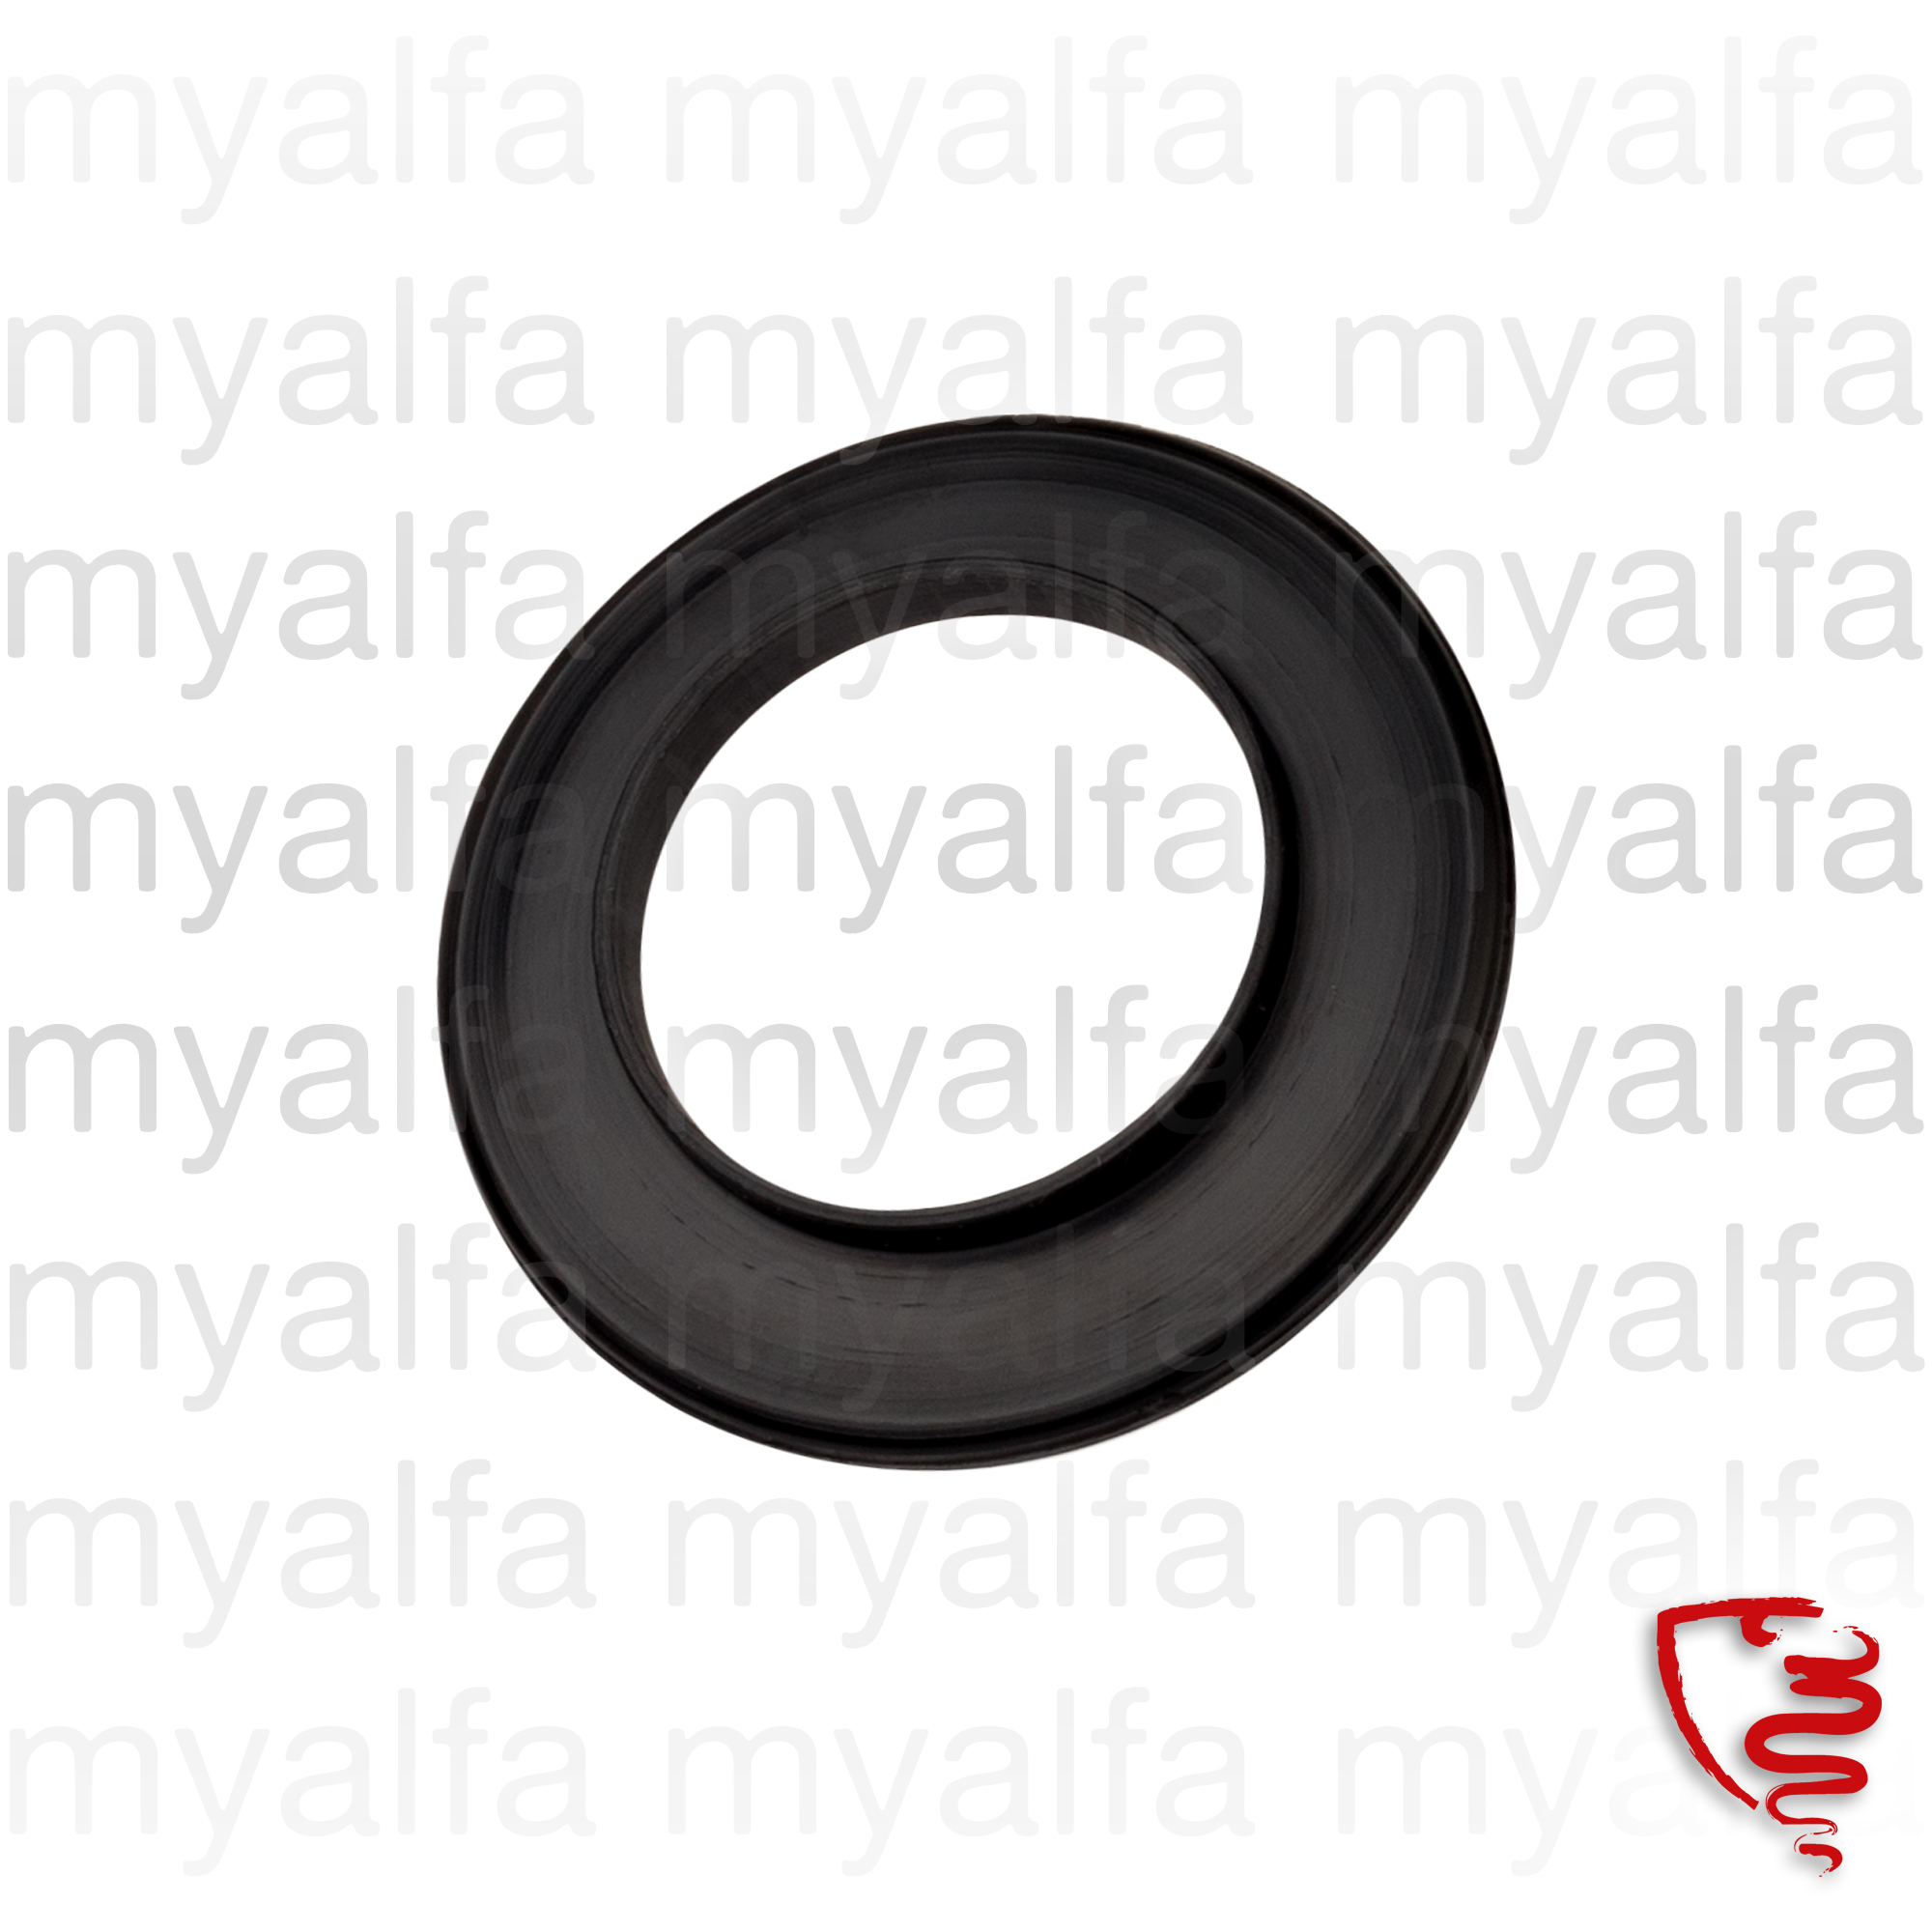 Plastic rings of the interior handles for 105/115, Body parts, Chrome Parts, Door